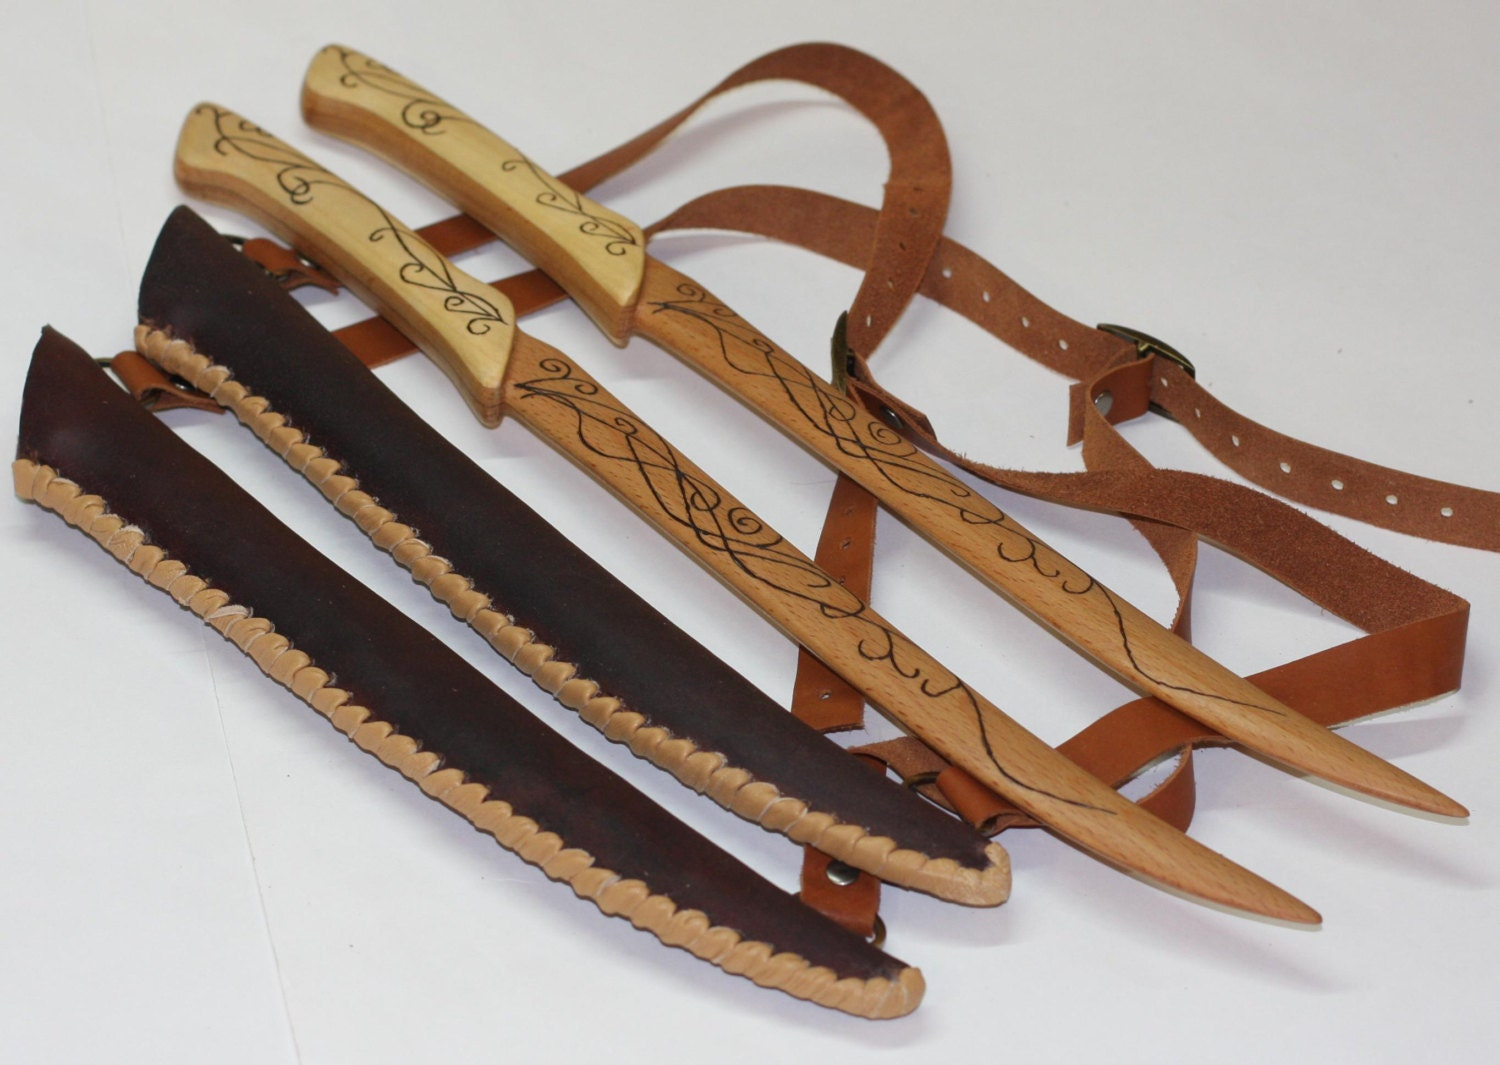 Toys For Knives : Toy wooden legolas knives with leather sheath